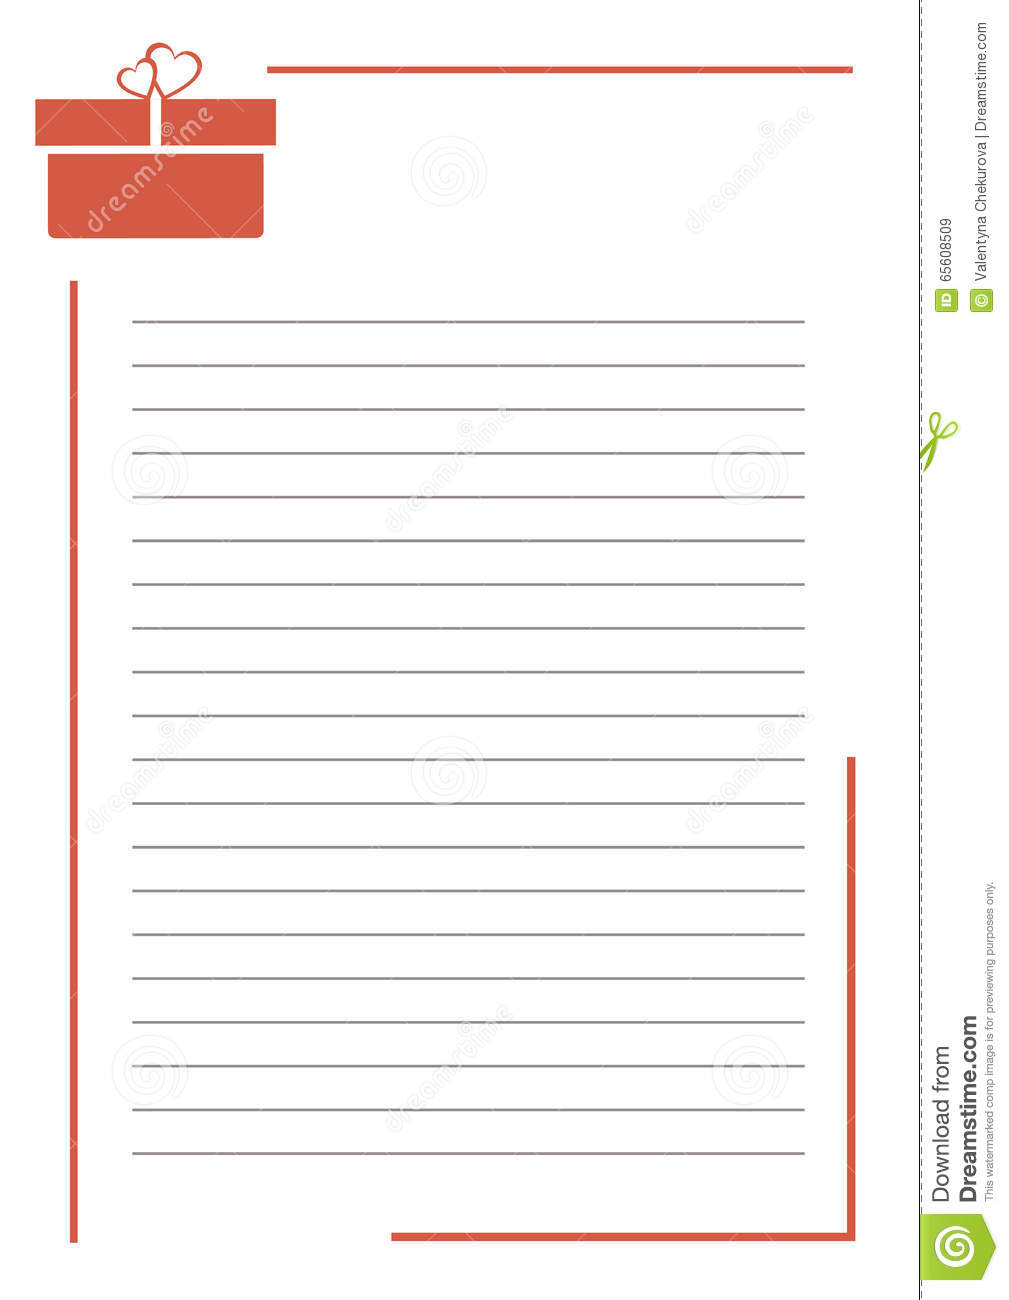 005 Note Cards Research Paper Vector Blank Letter Greeting Card White Form Red Gift Box Lines Border Format Size Wonderful Apa Examples For A Full